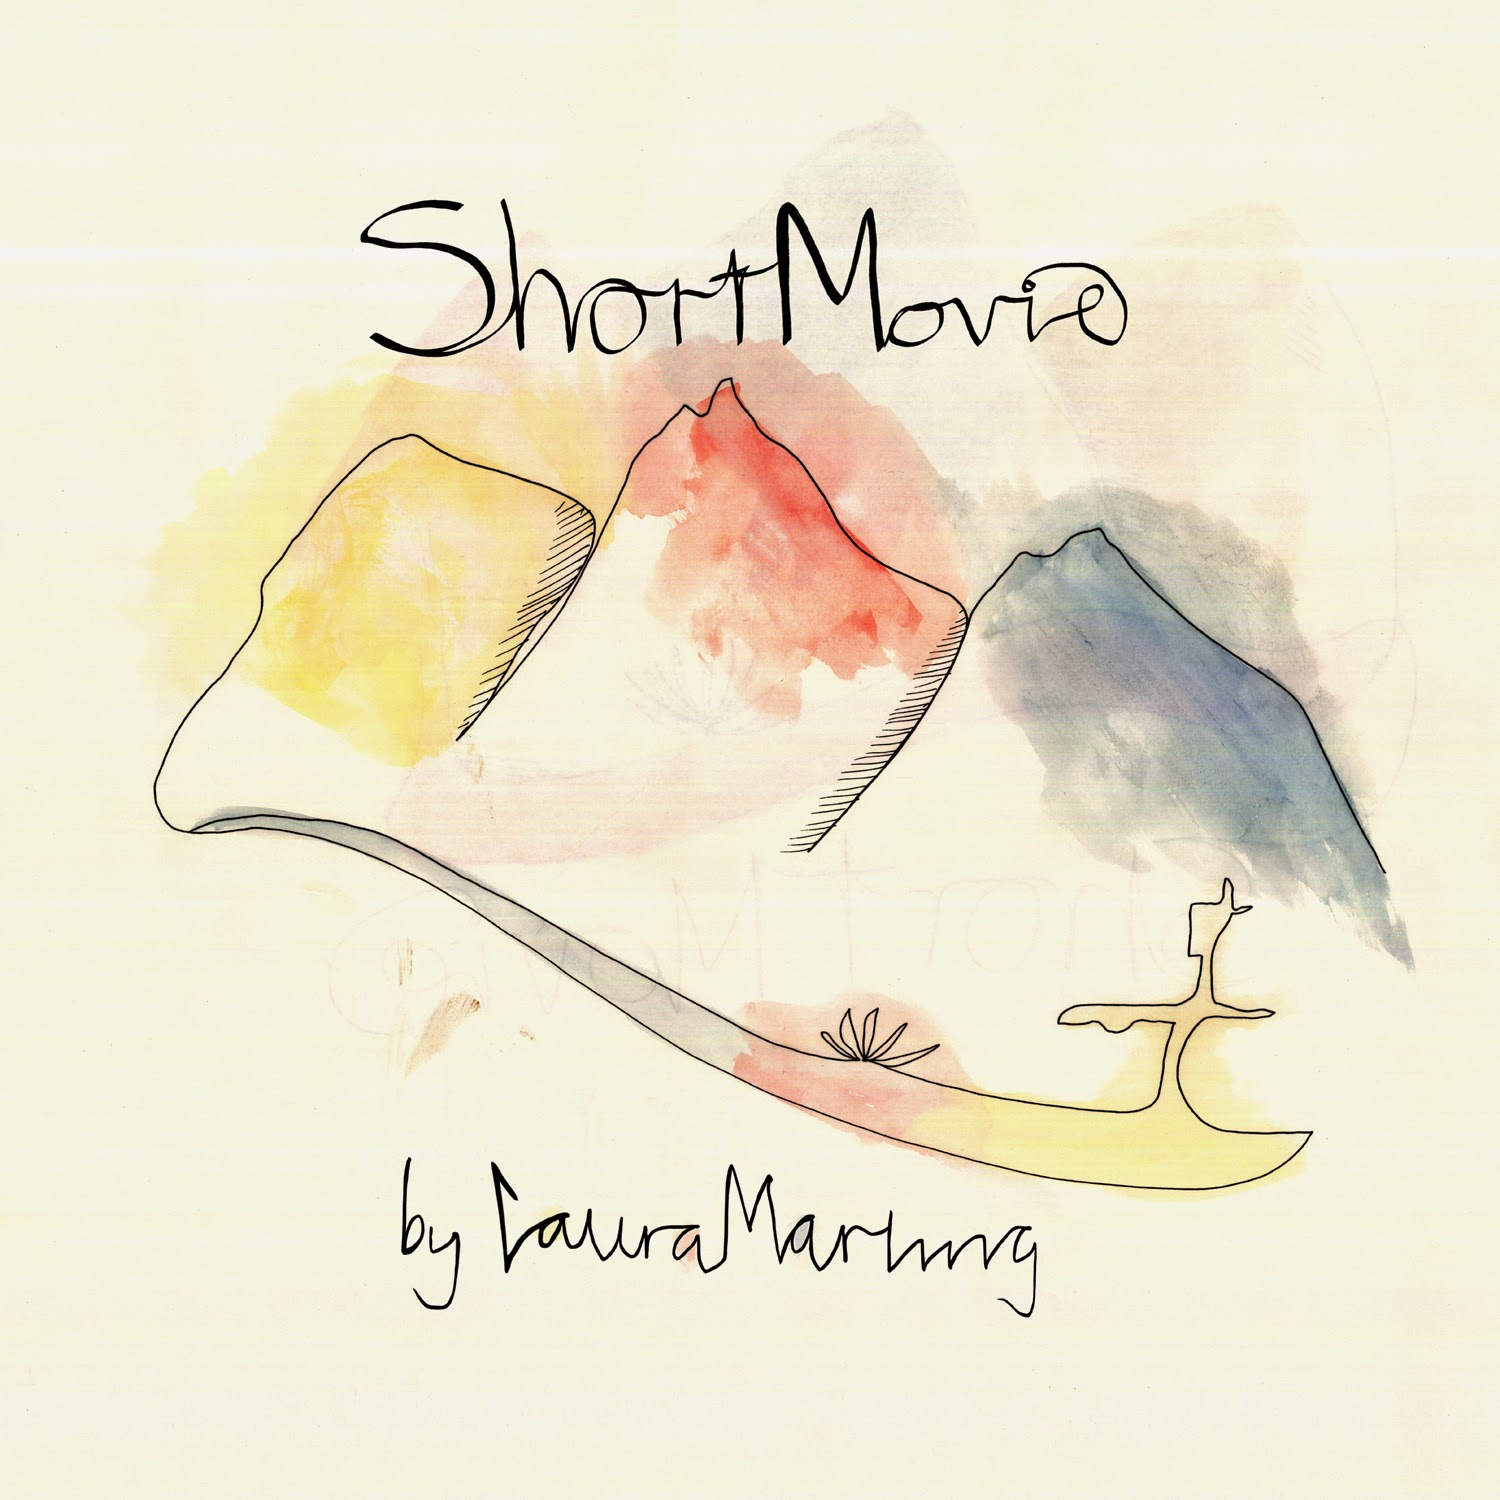 Laura Marling Short Movie album review